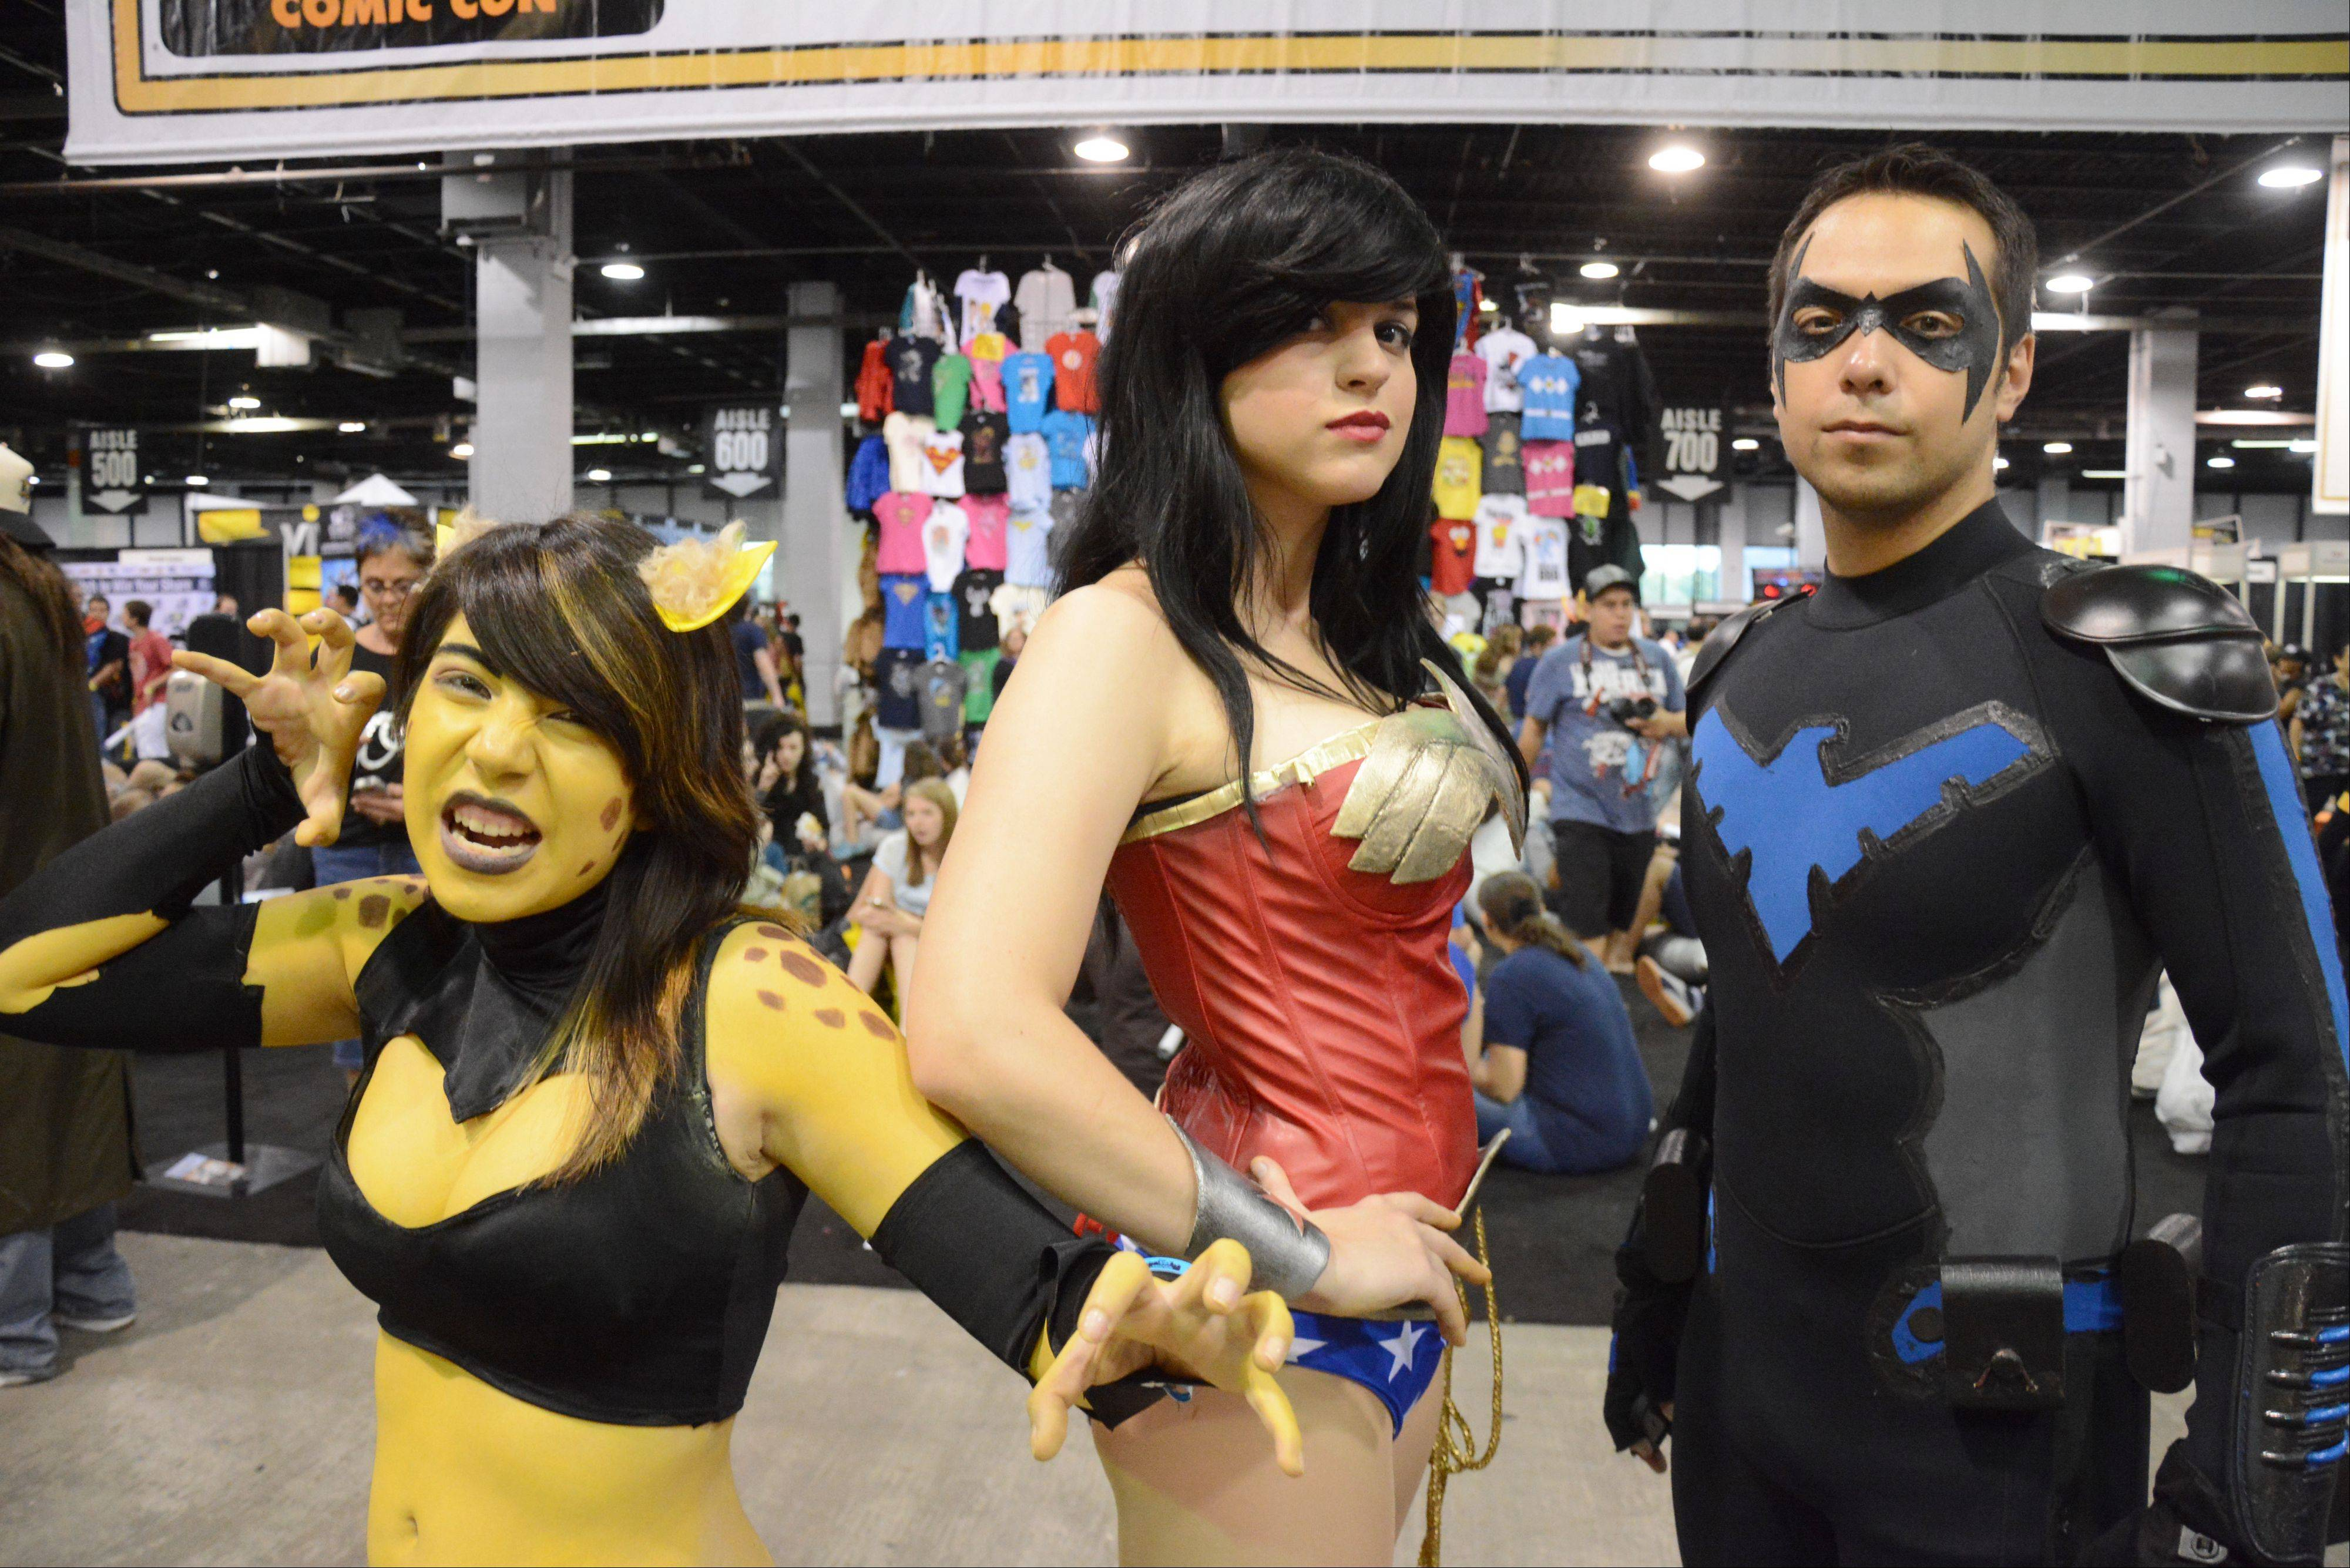 Comic Con meshes all kinds of entertainment